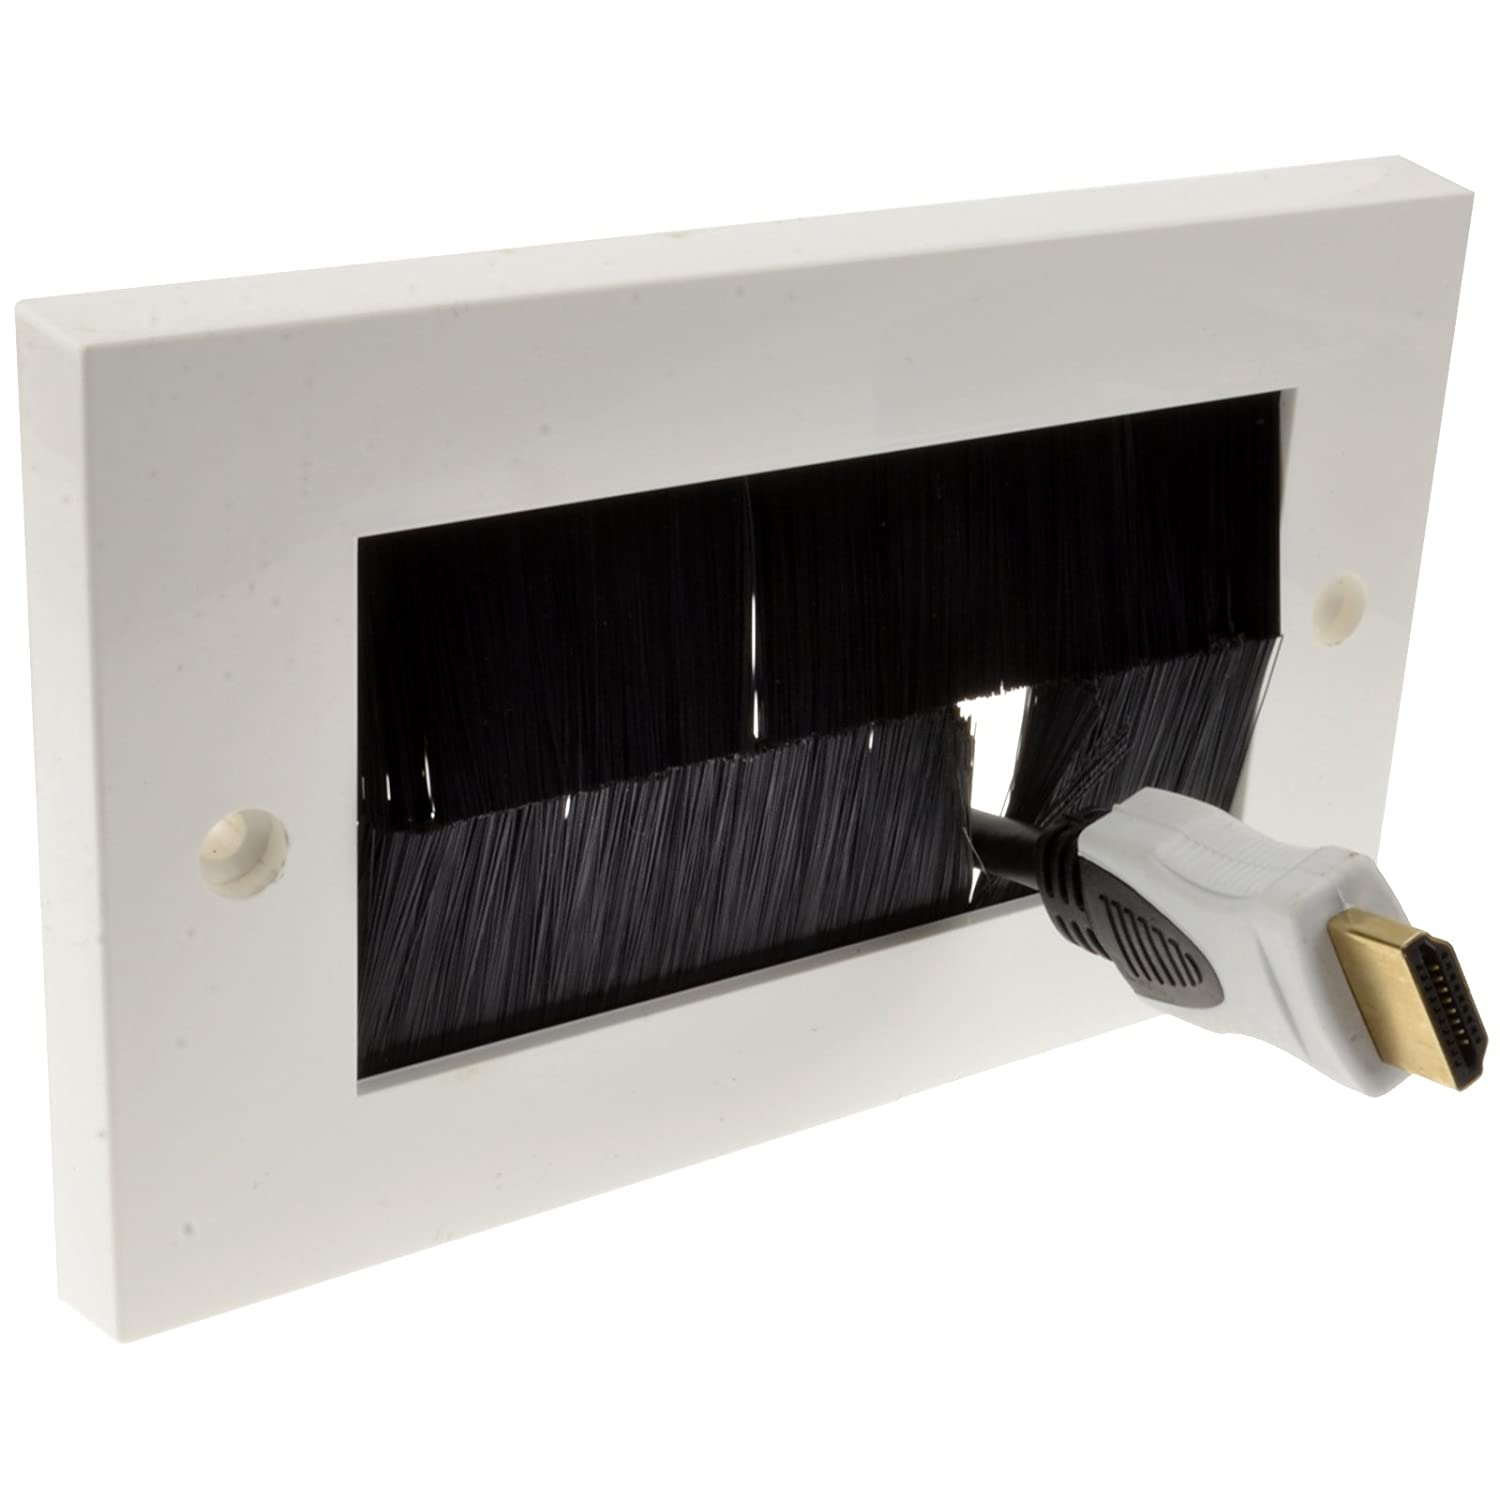 kenable Exit/Wall Outlet UK Single Gang Faceplate Brush for Cable - White/Black singlewhite B0095ZM4DC